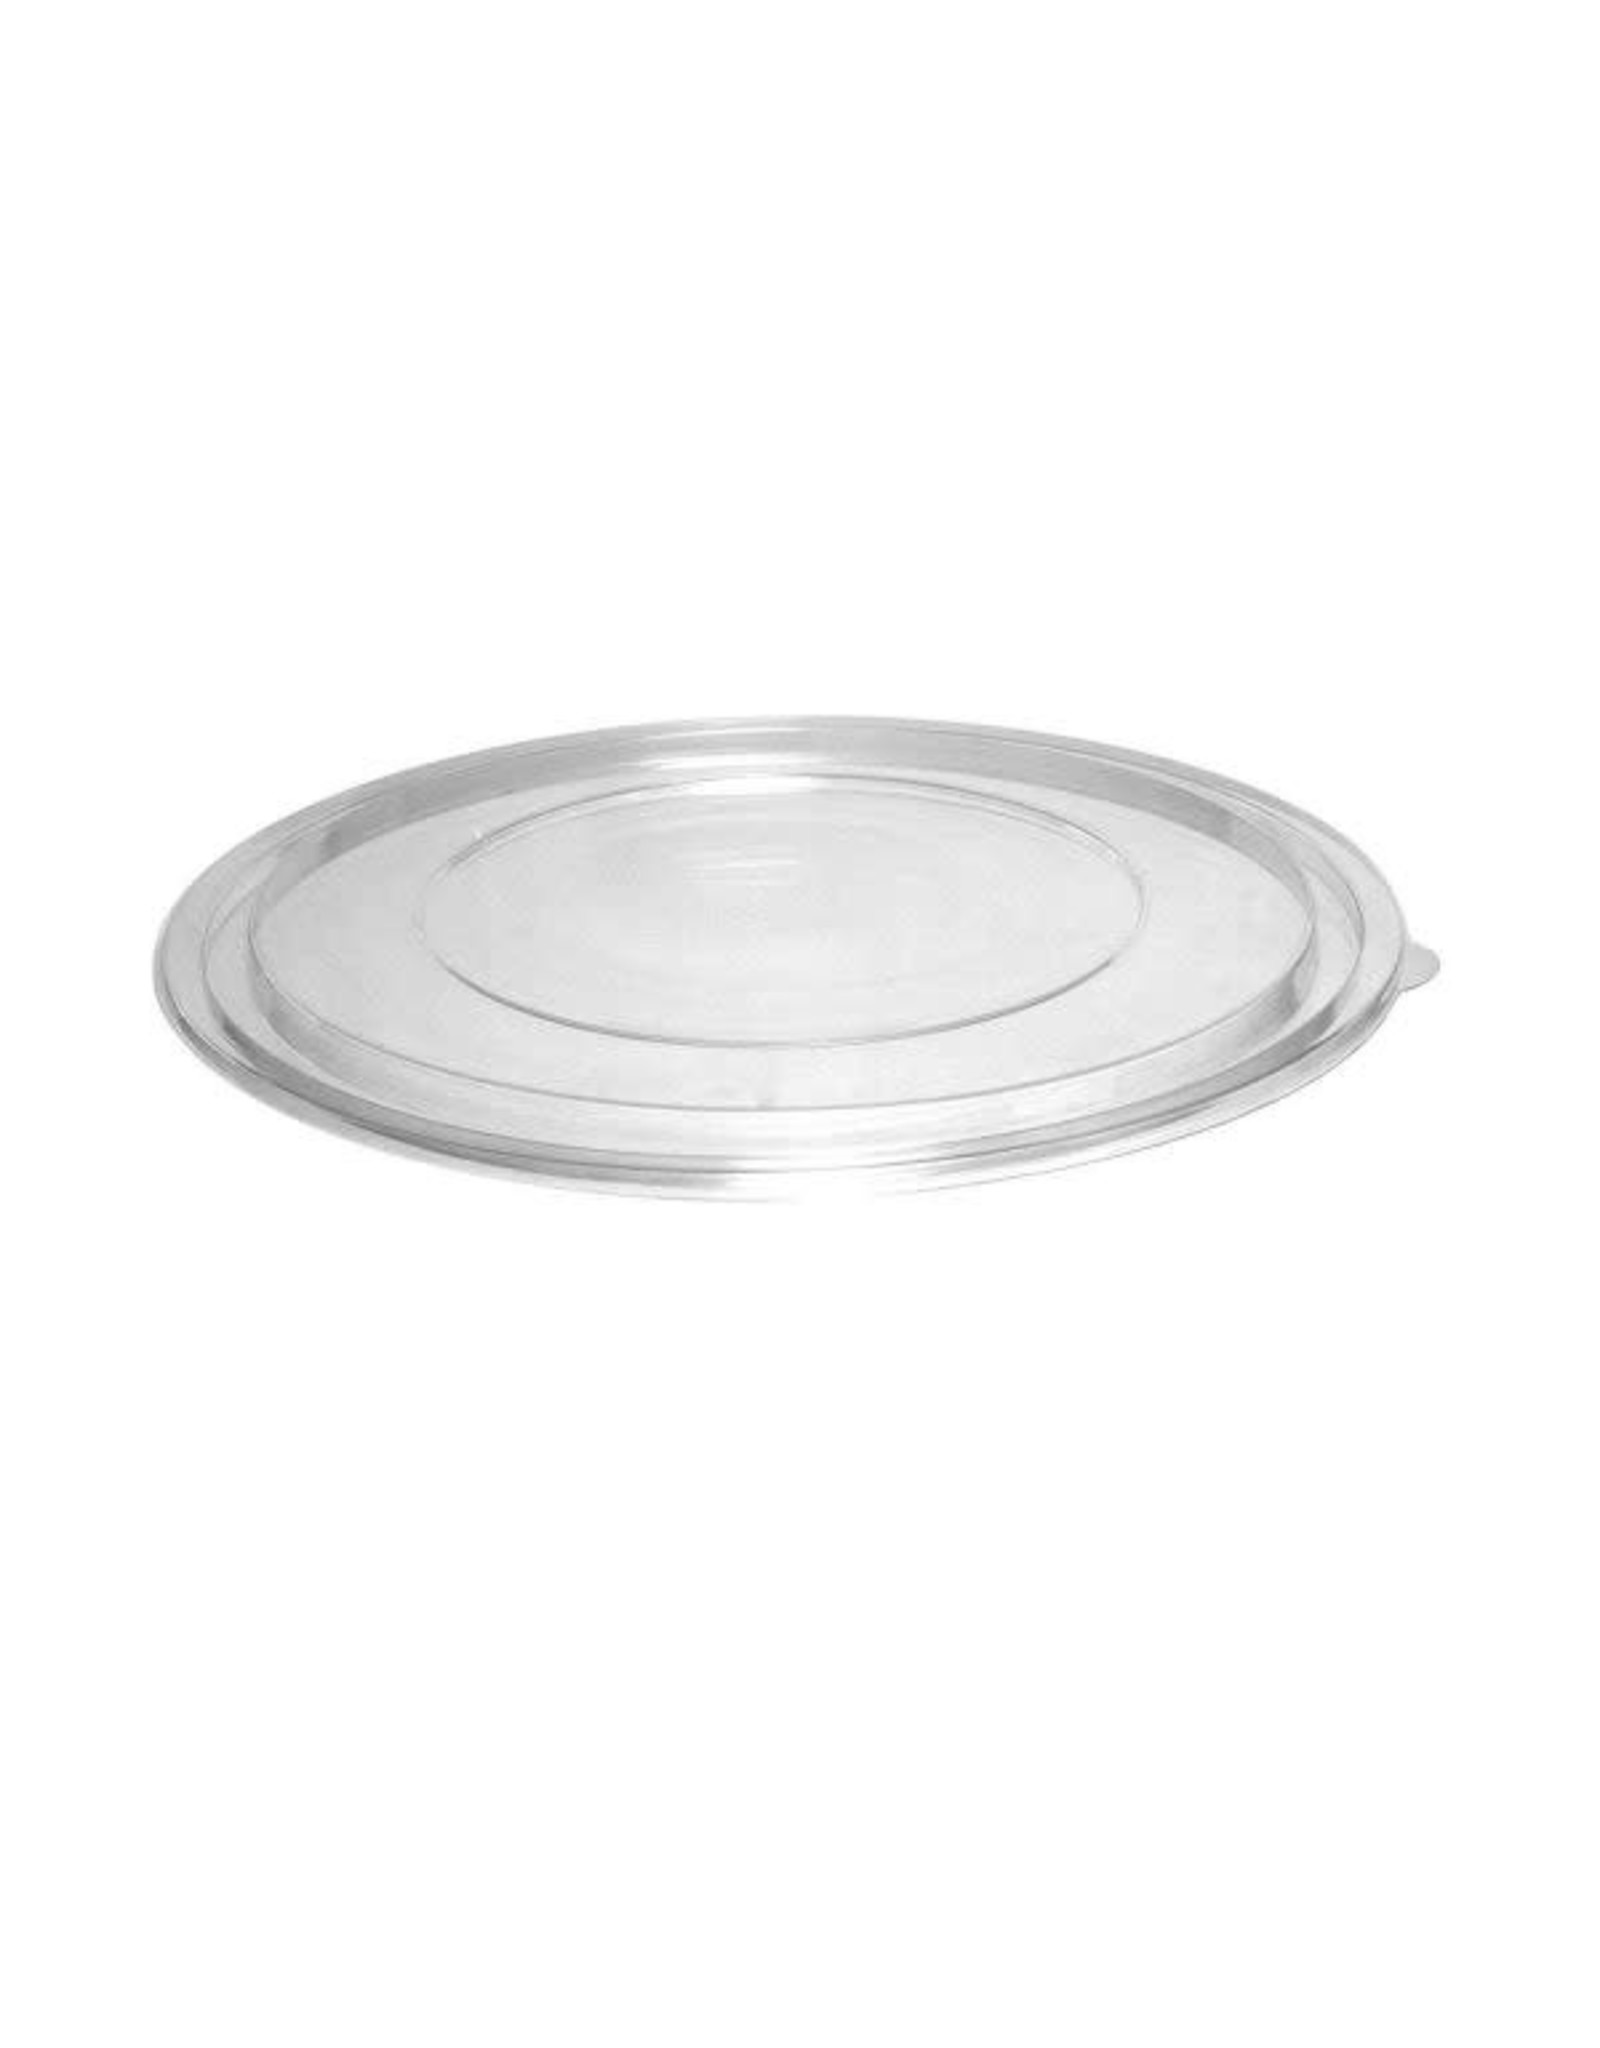 northwest 1600z Clear Lid - 1ct.